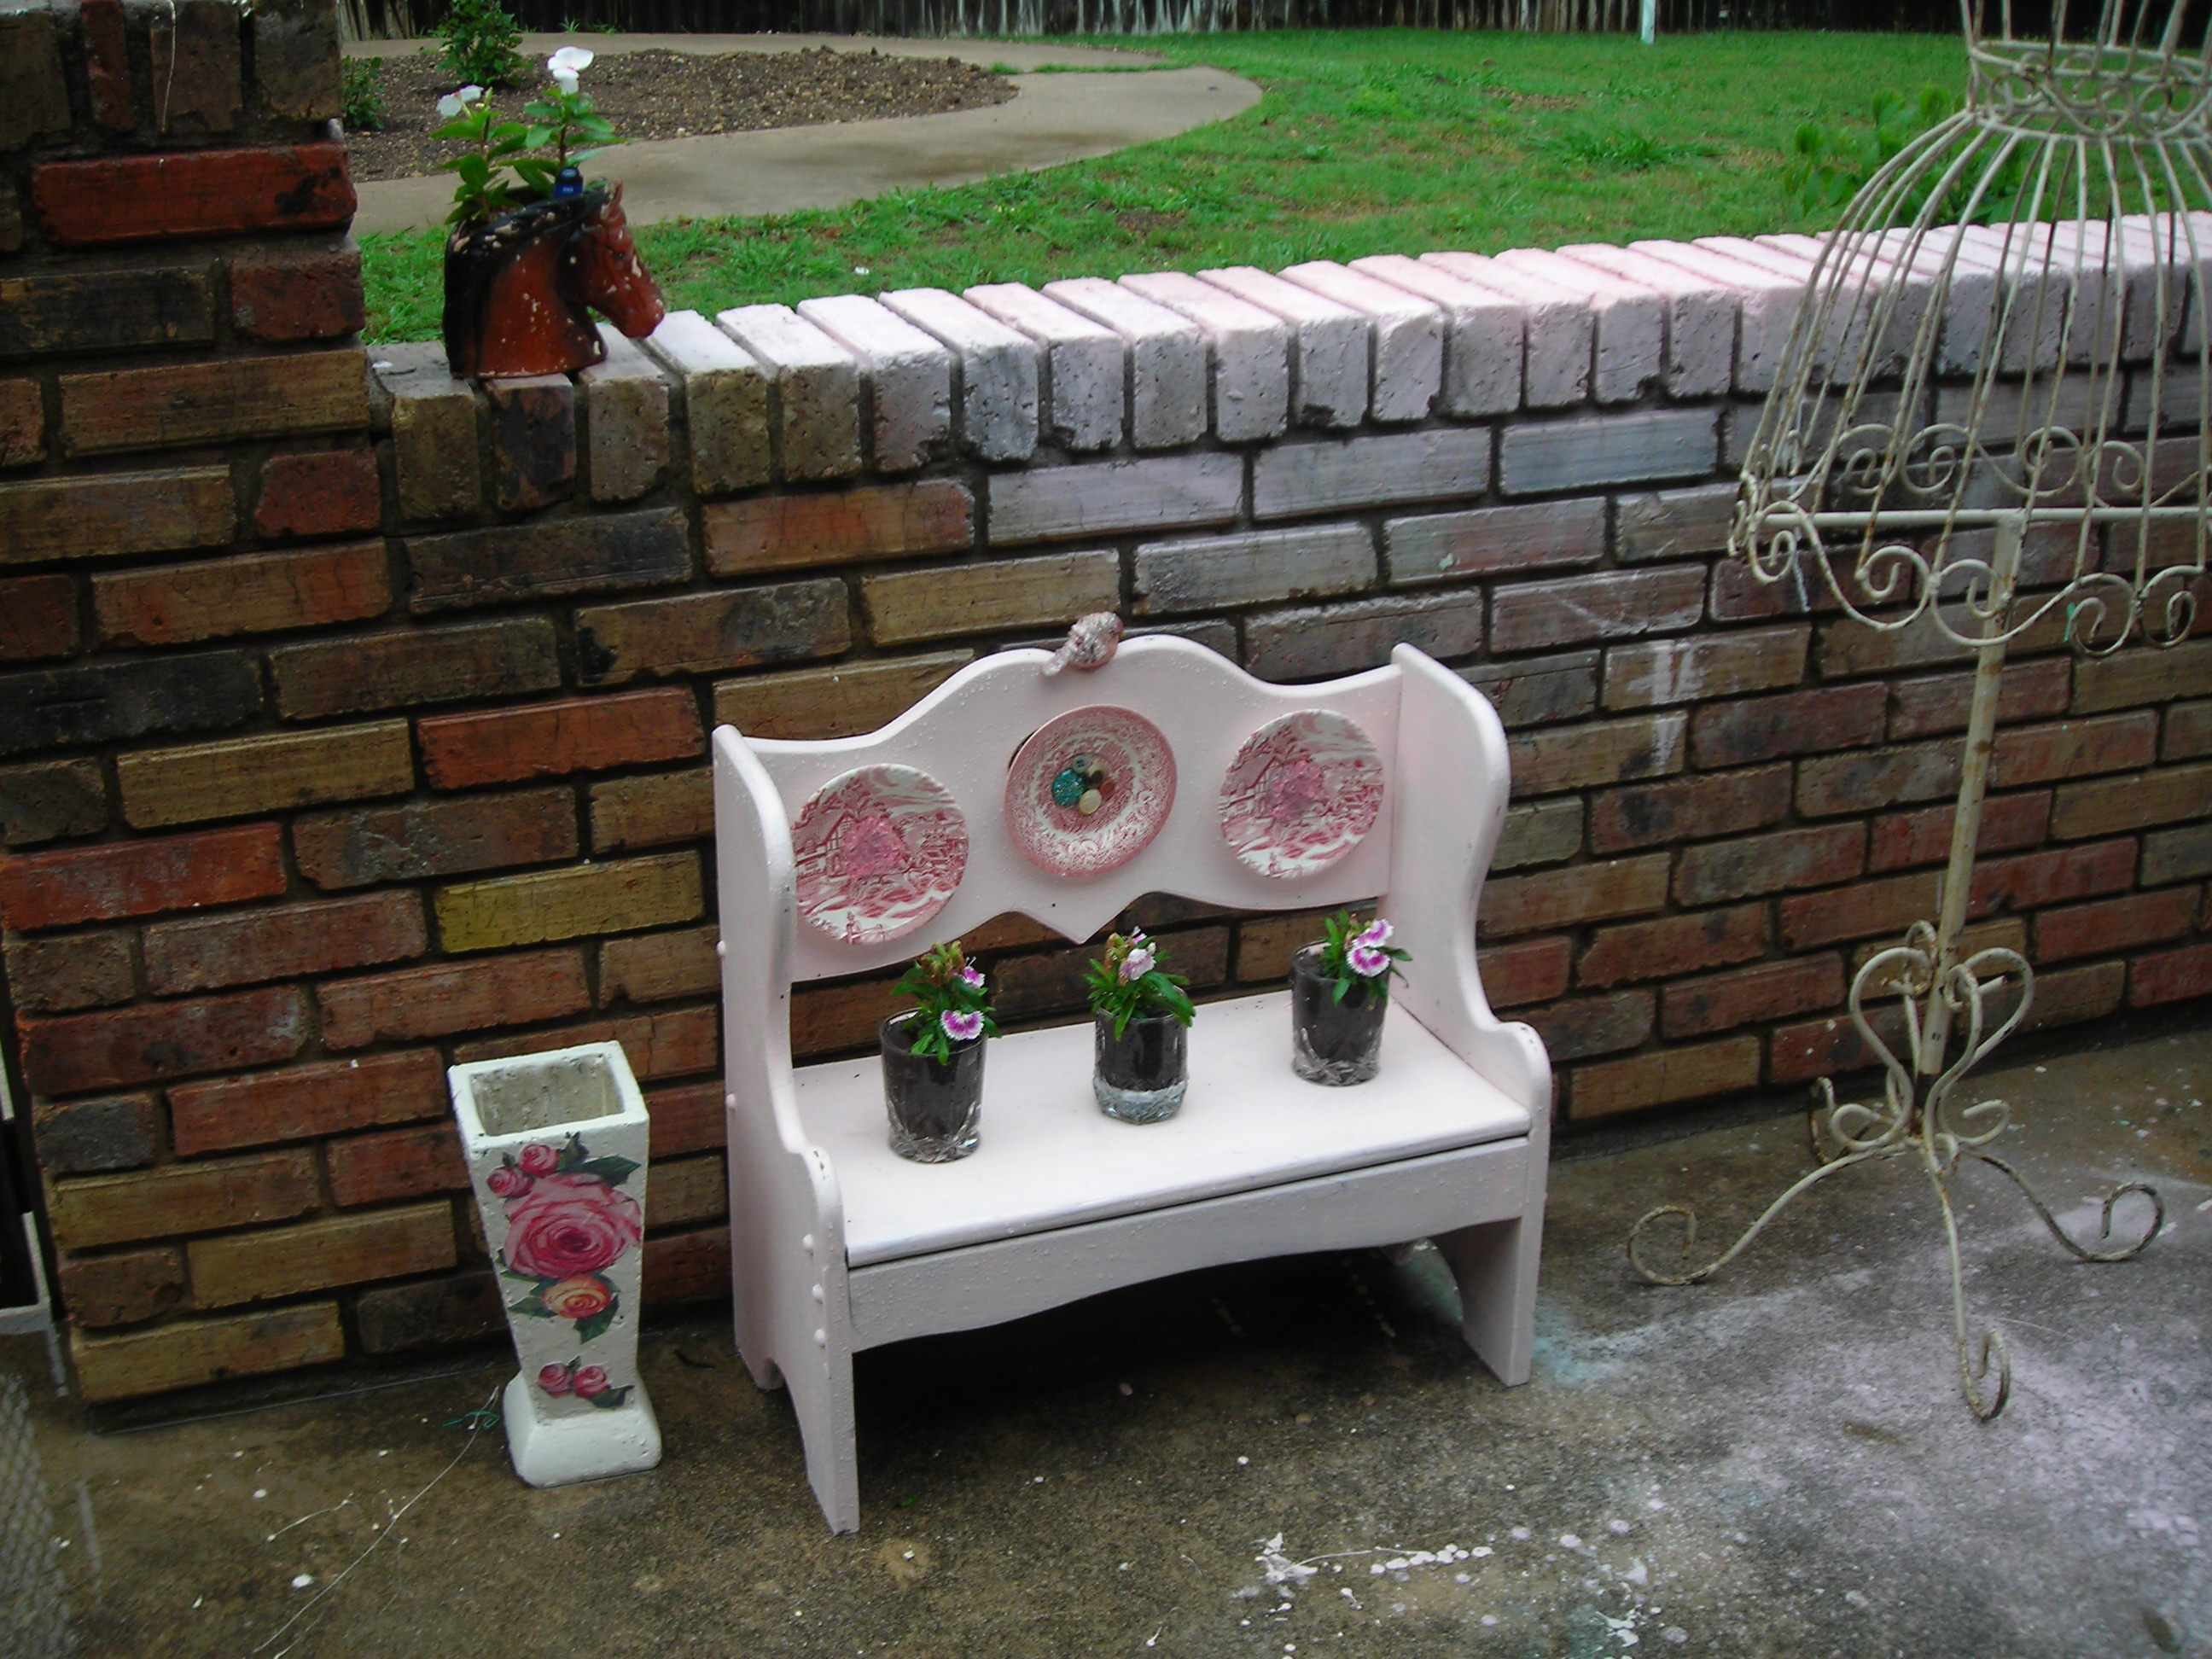 some pretties from my patio ... the little bench i found at the GW barn a few weeks ago. painted it out pink, attached some little plates and a birdie ... the little plants are from the lampasas sale, the rose vase is from the hh sale